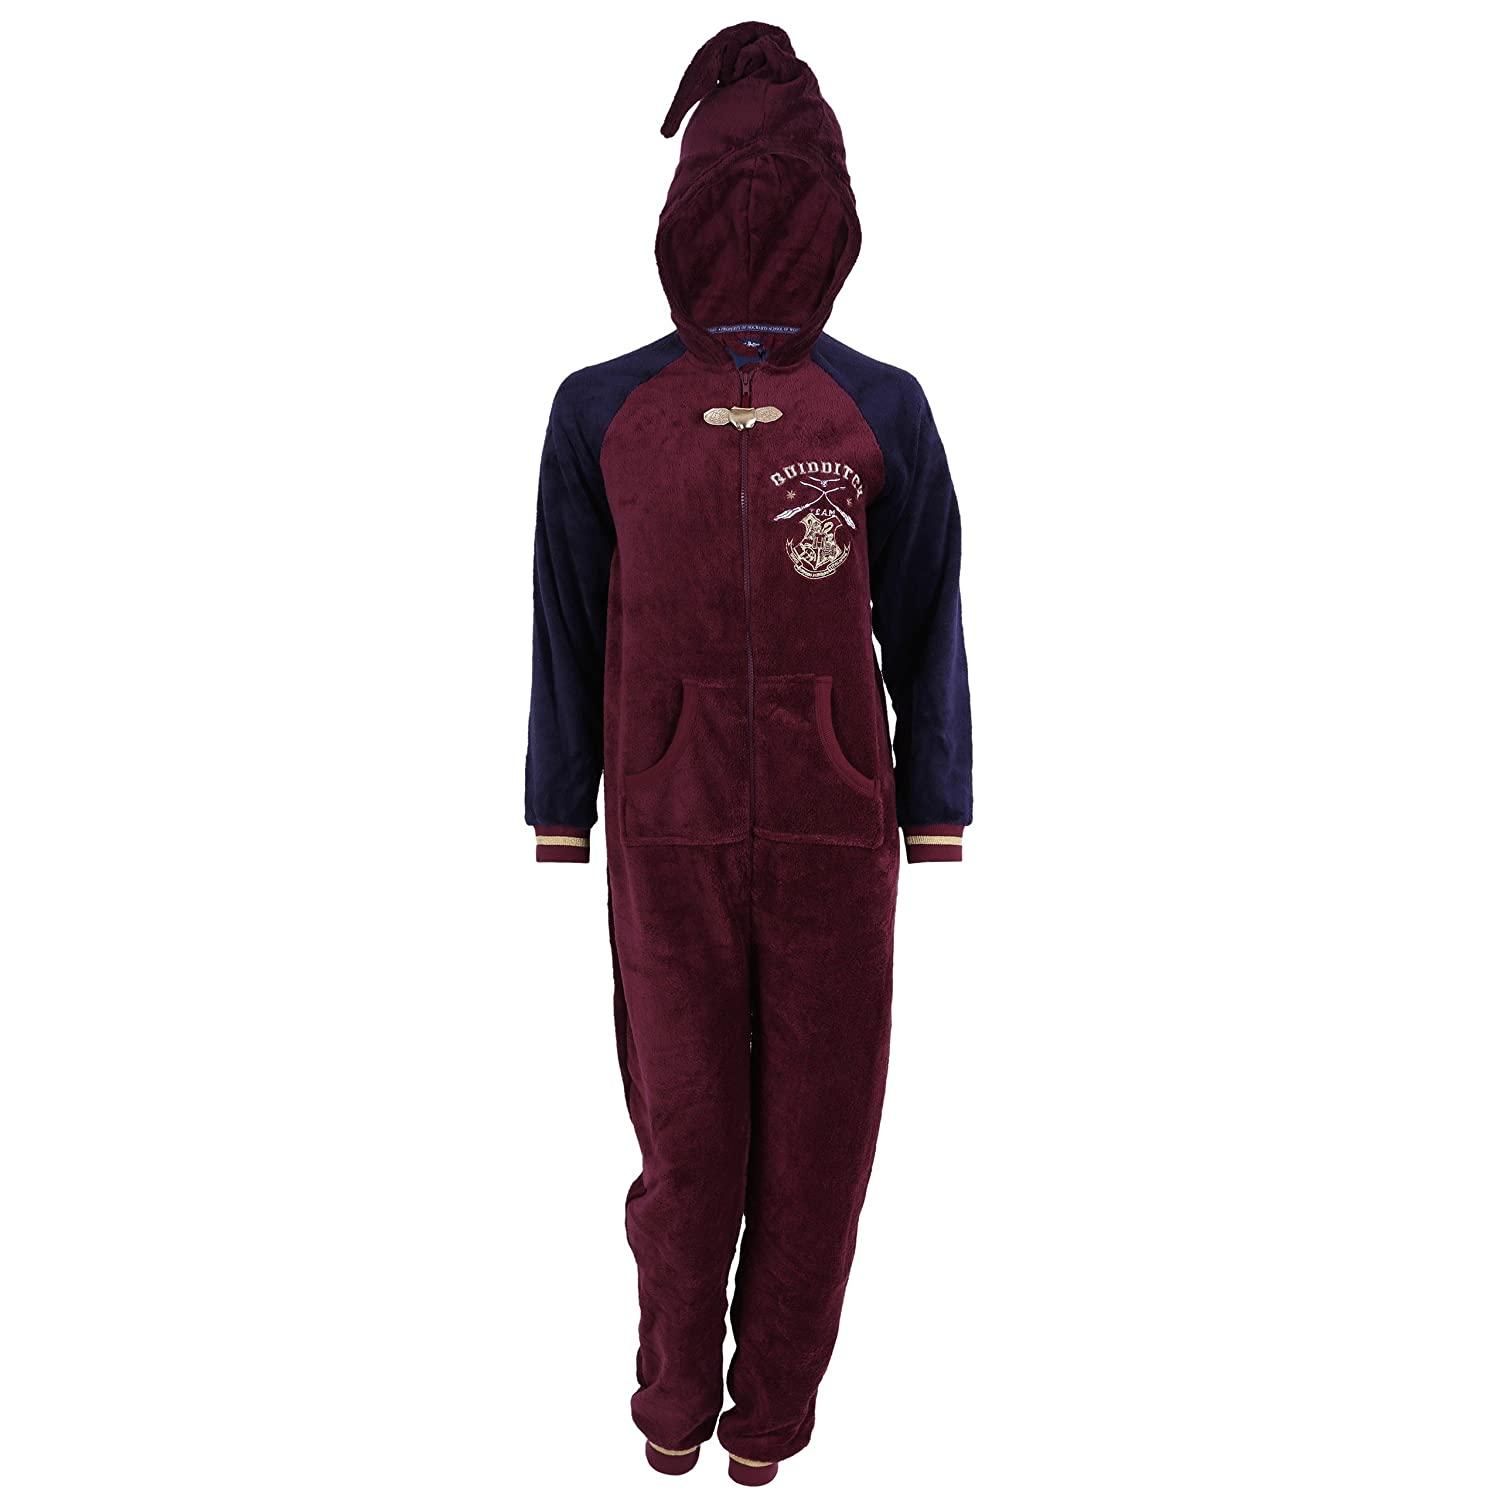 Burgundy, Pointed Hood, All in One Piece Pyjama, Onesie for Ladies Harry Potter Harry Potter - Hogwarts